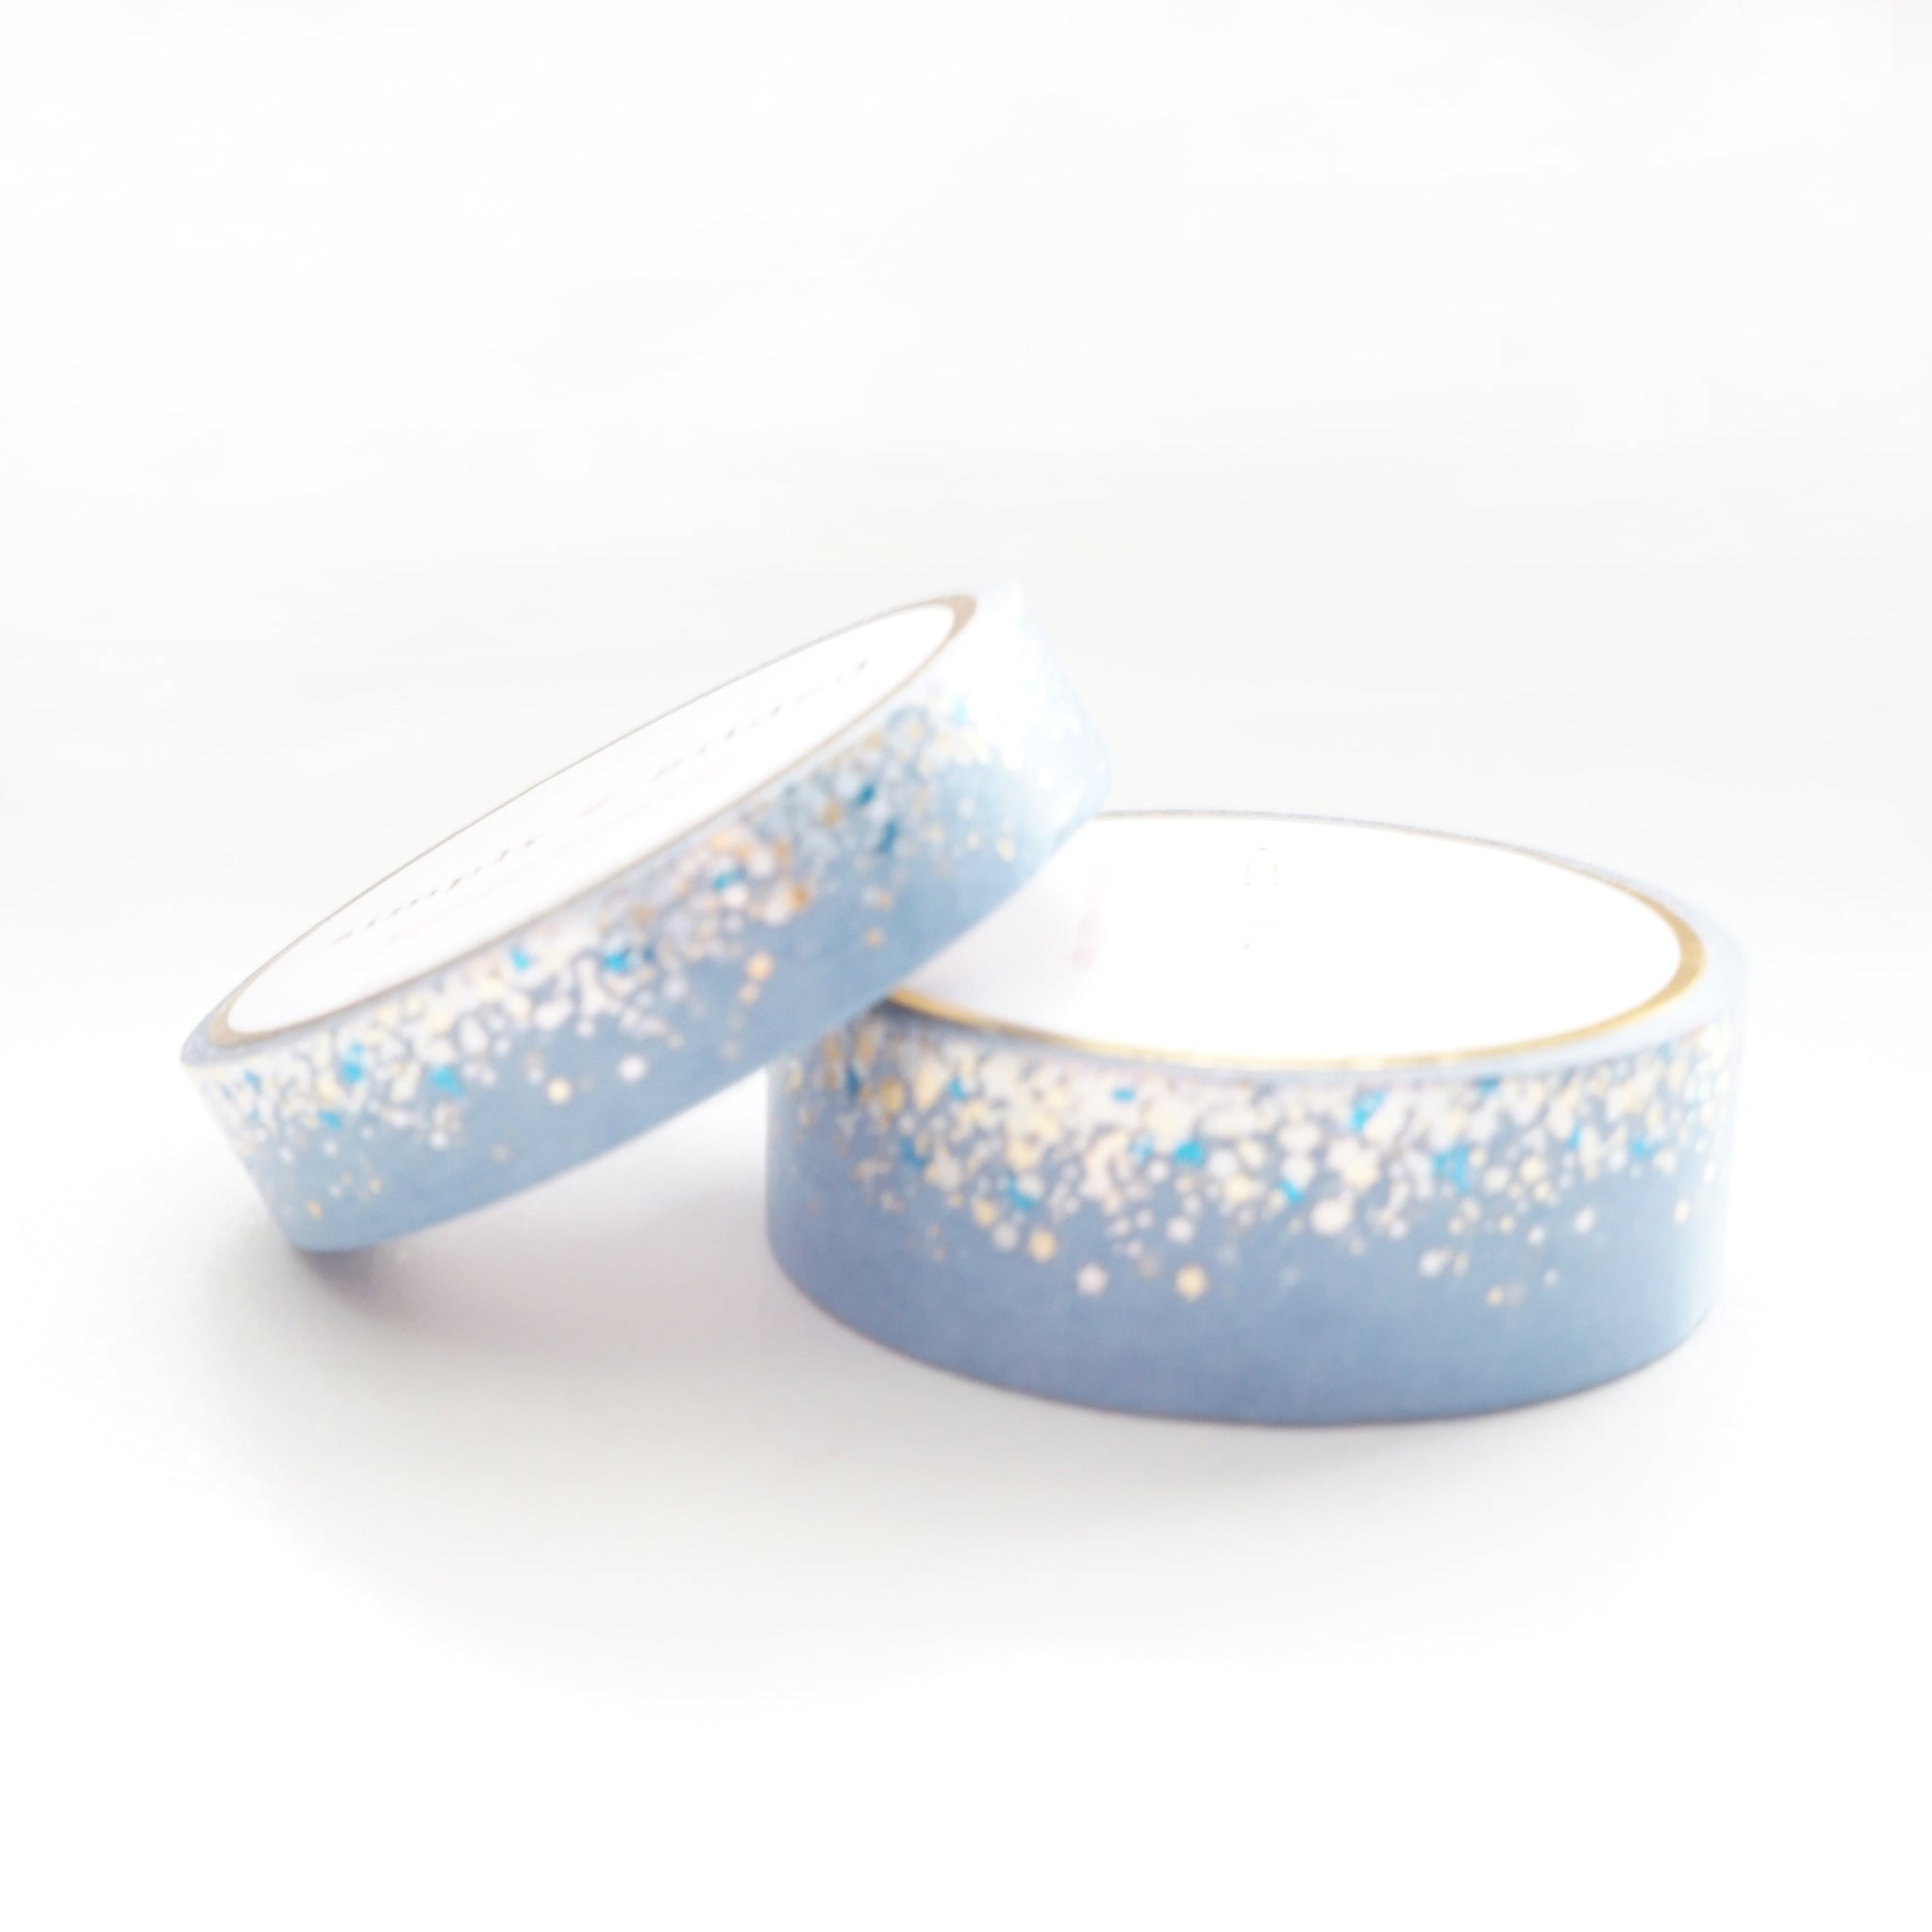 WASHI TAPE 15/10mm set - CANDY Stardust BLUE + silver holographic/lt. gold/blue (May Release, Presale) LIMIT of 2